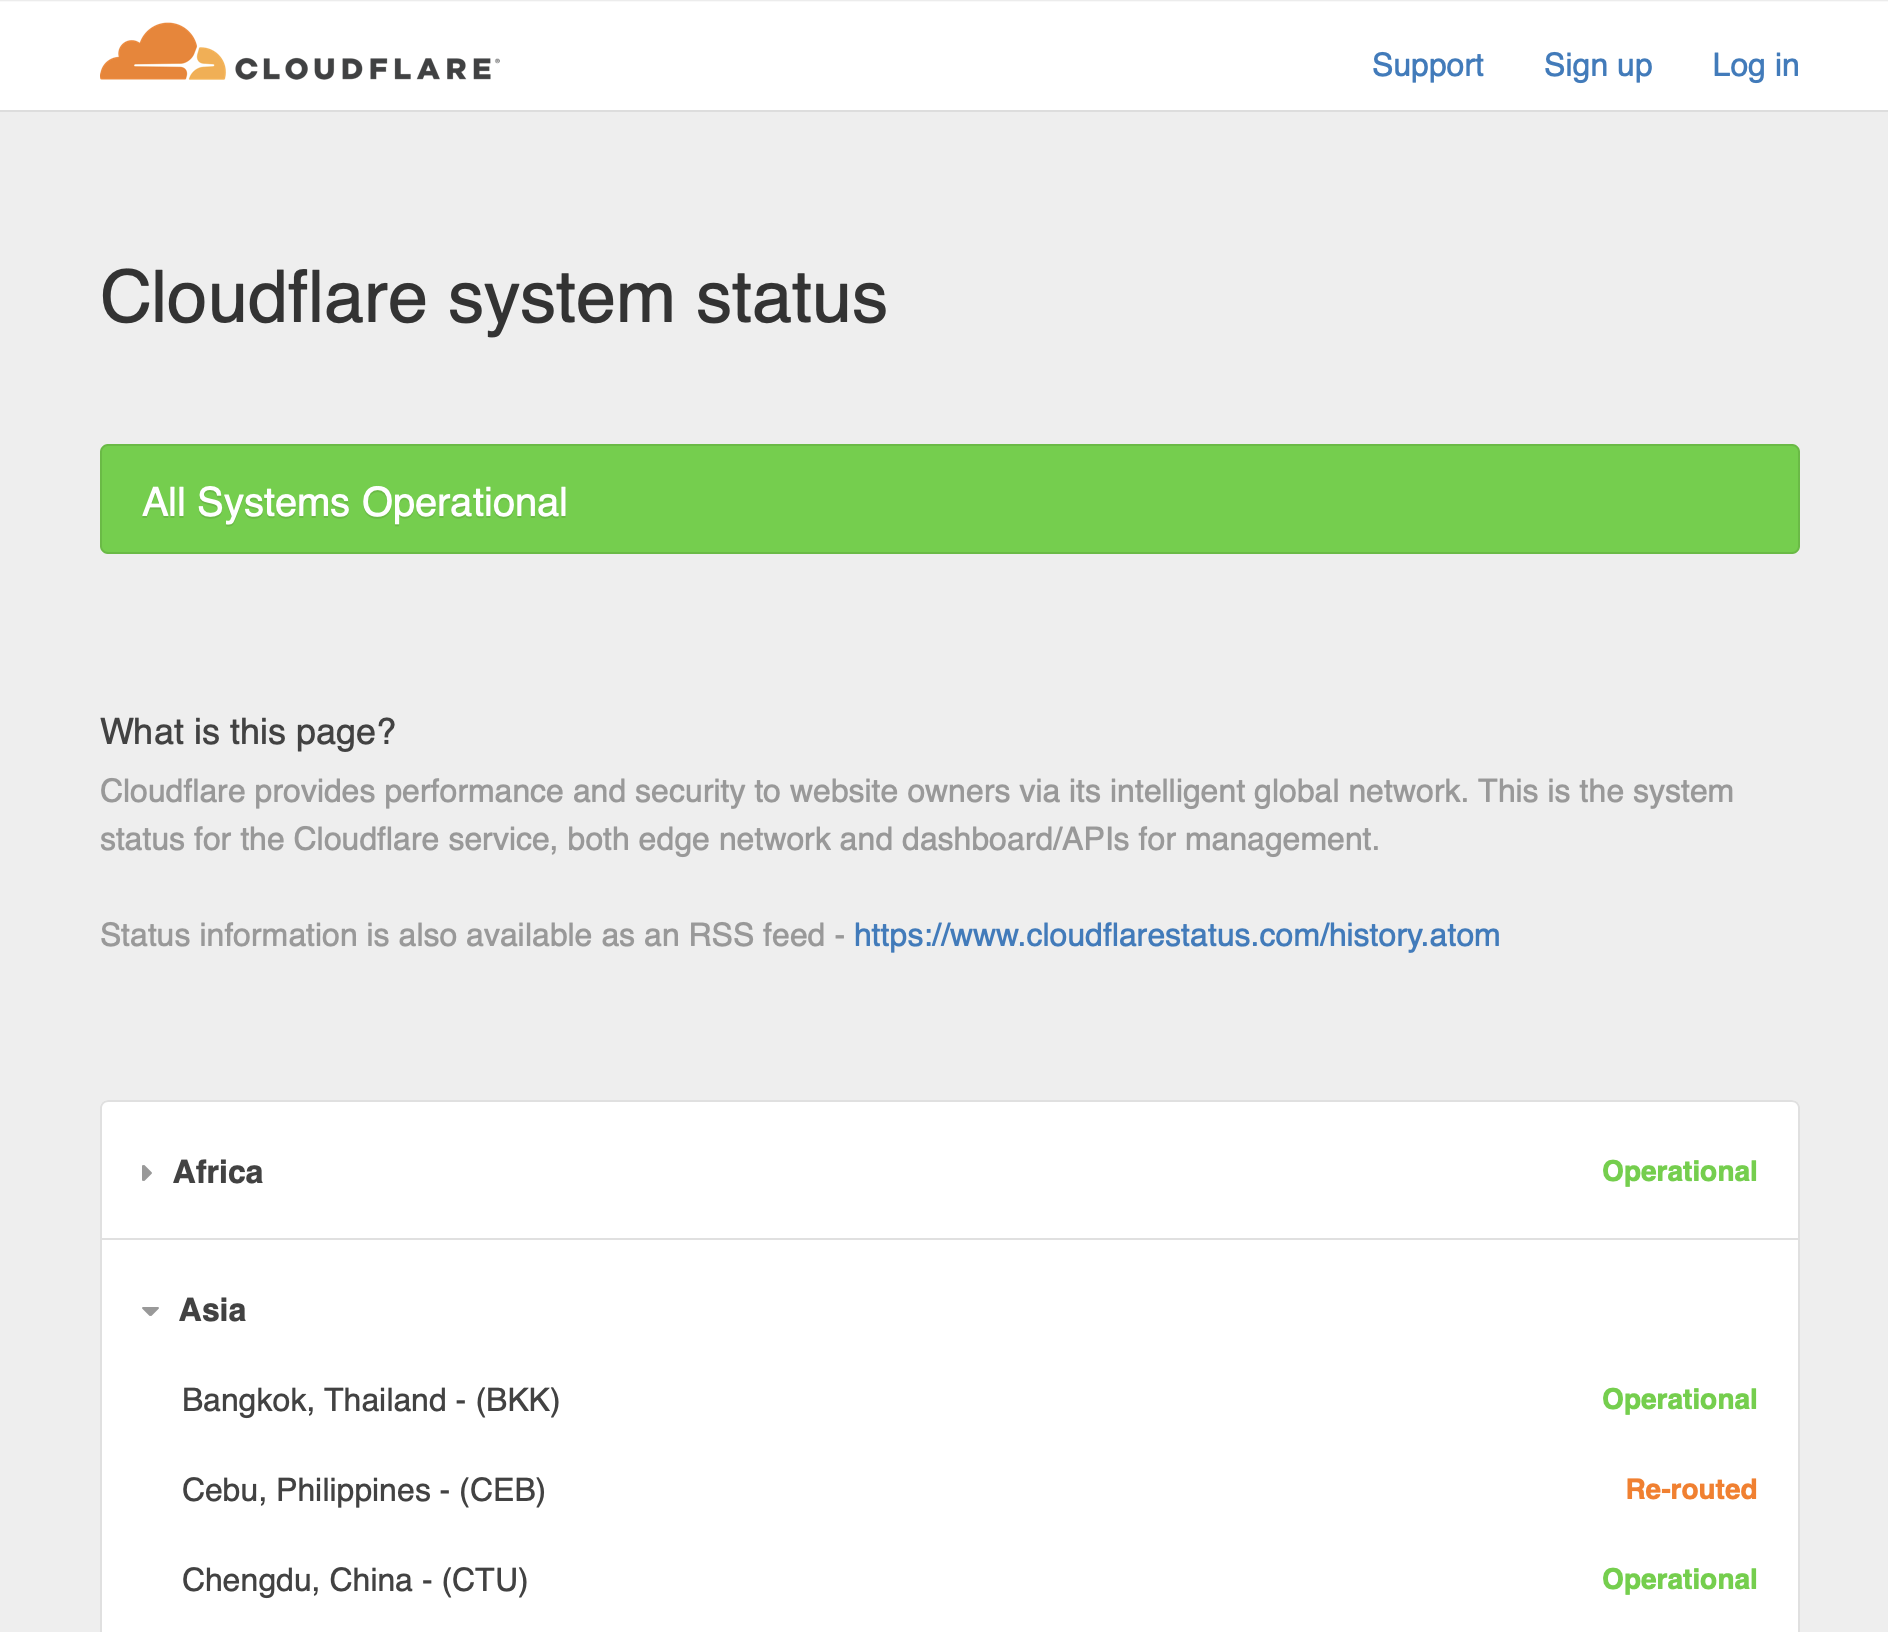 cloudflarestatus.com in 2017